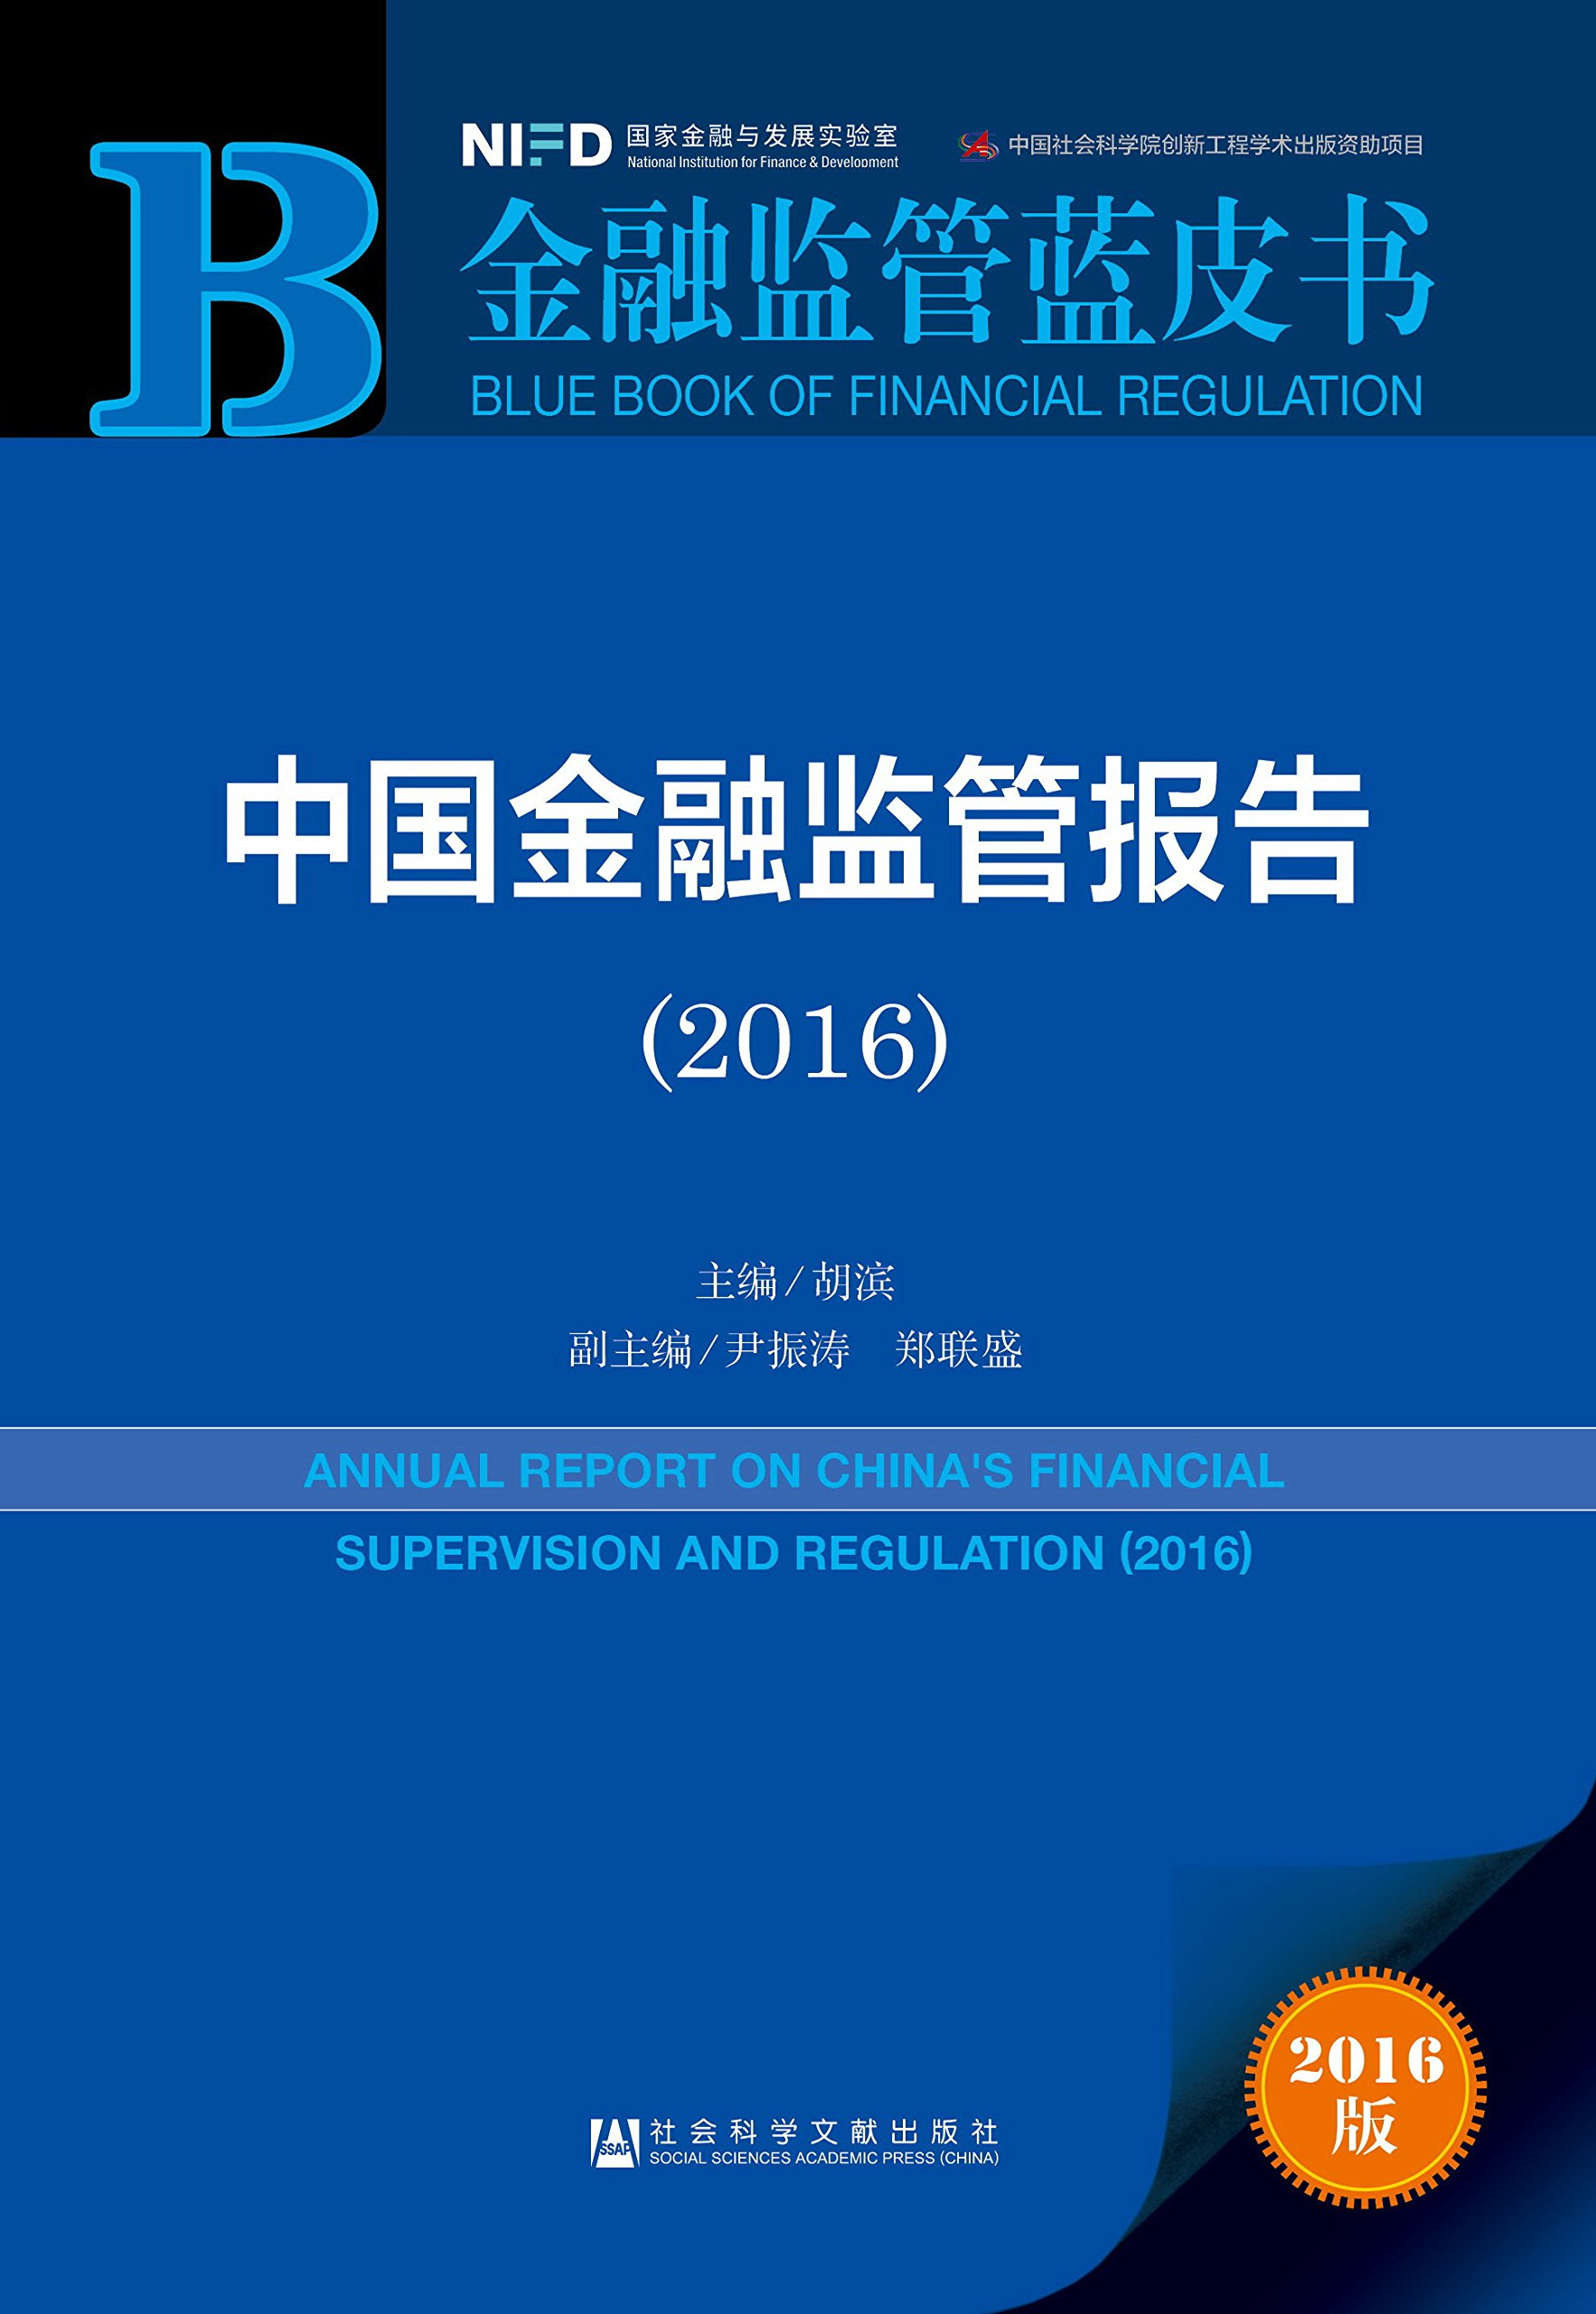 Annual Report on China's Financial Supervision and Regulation: 2016